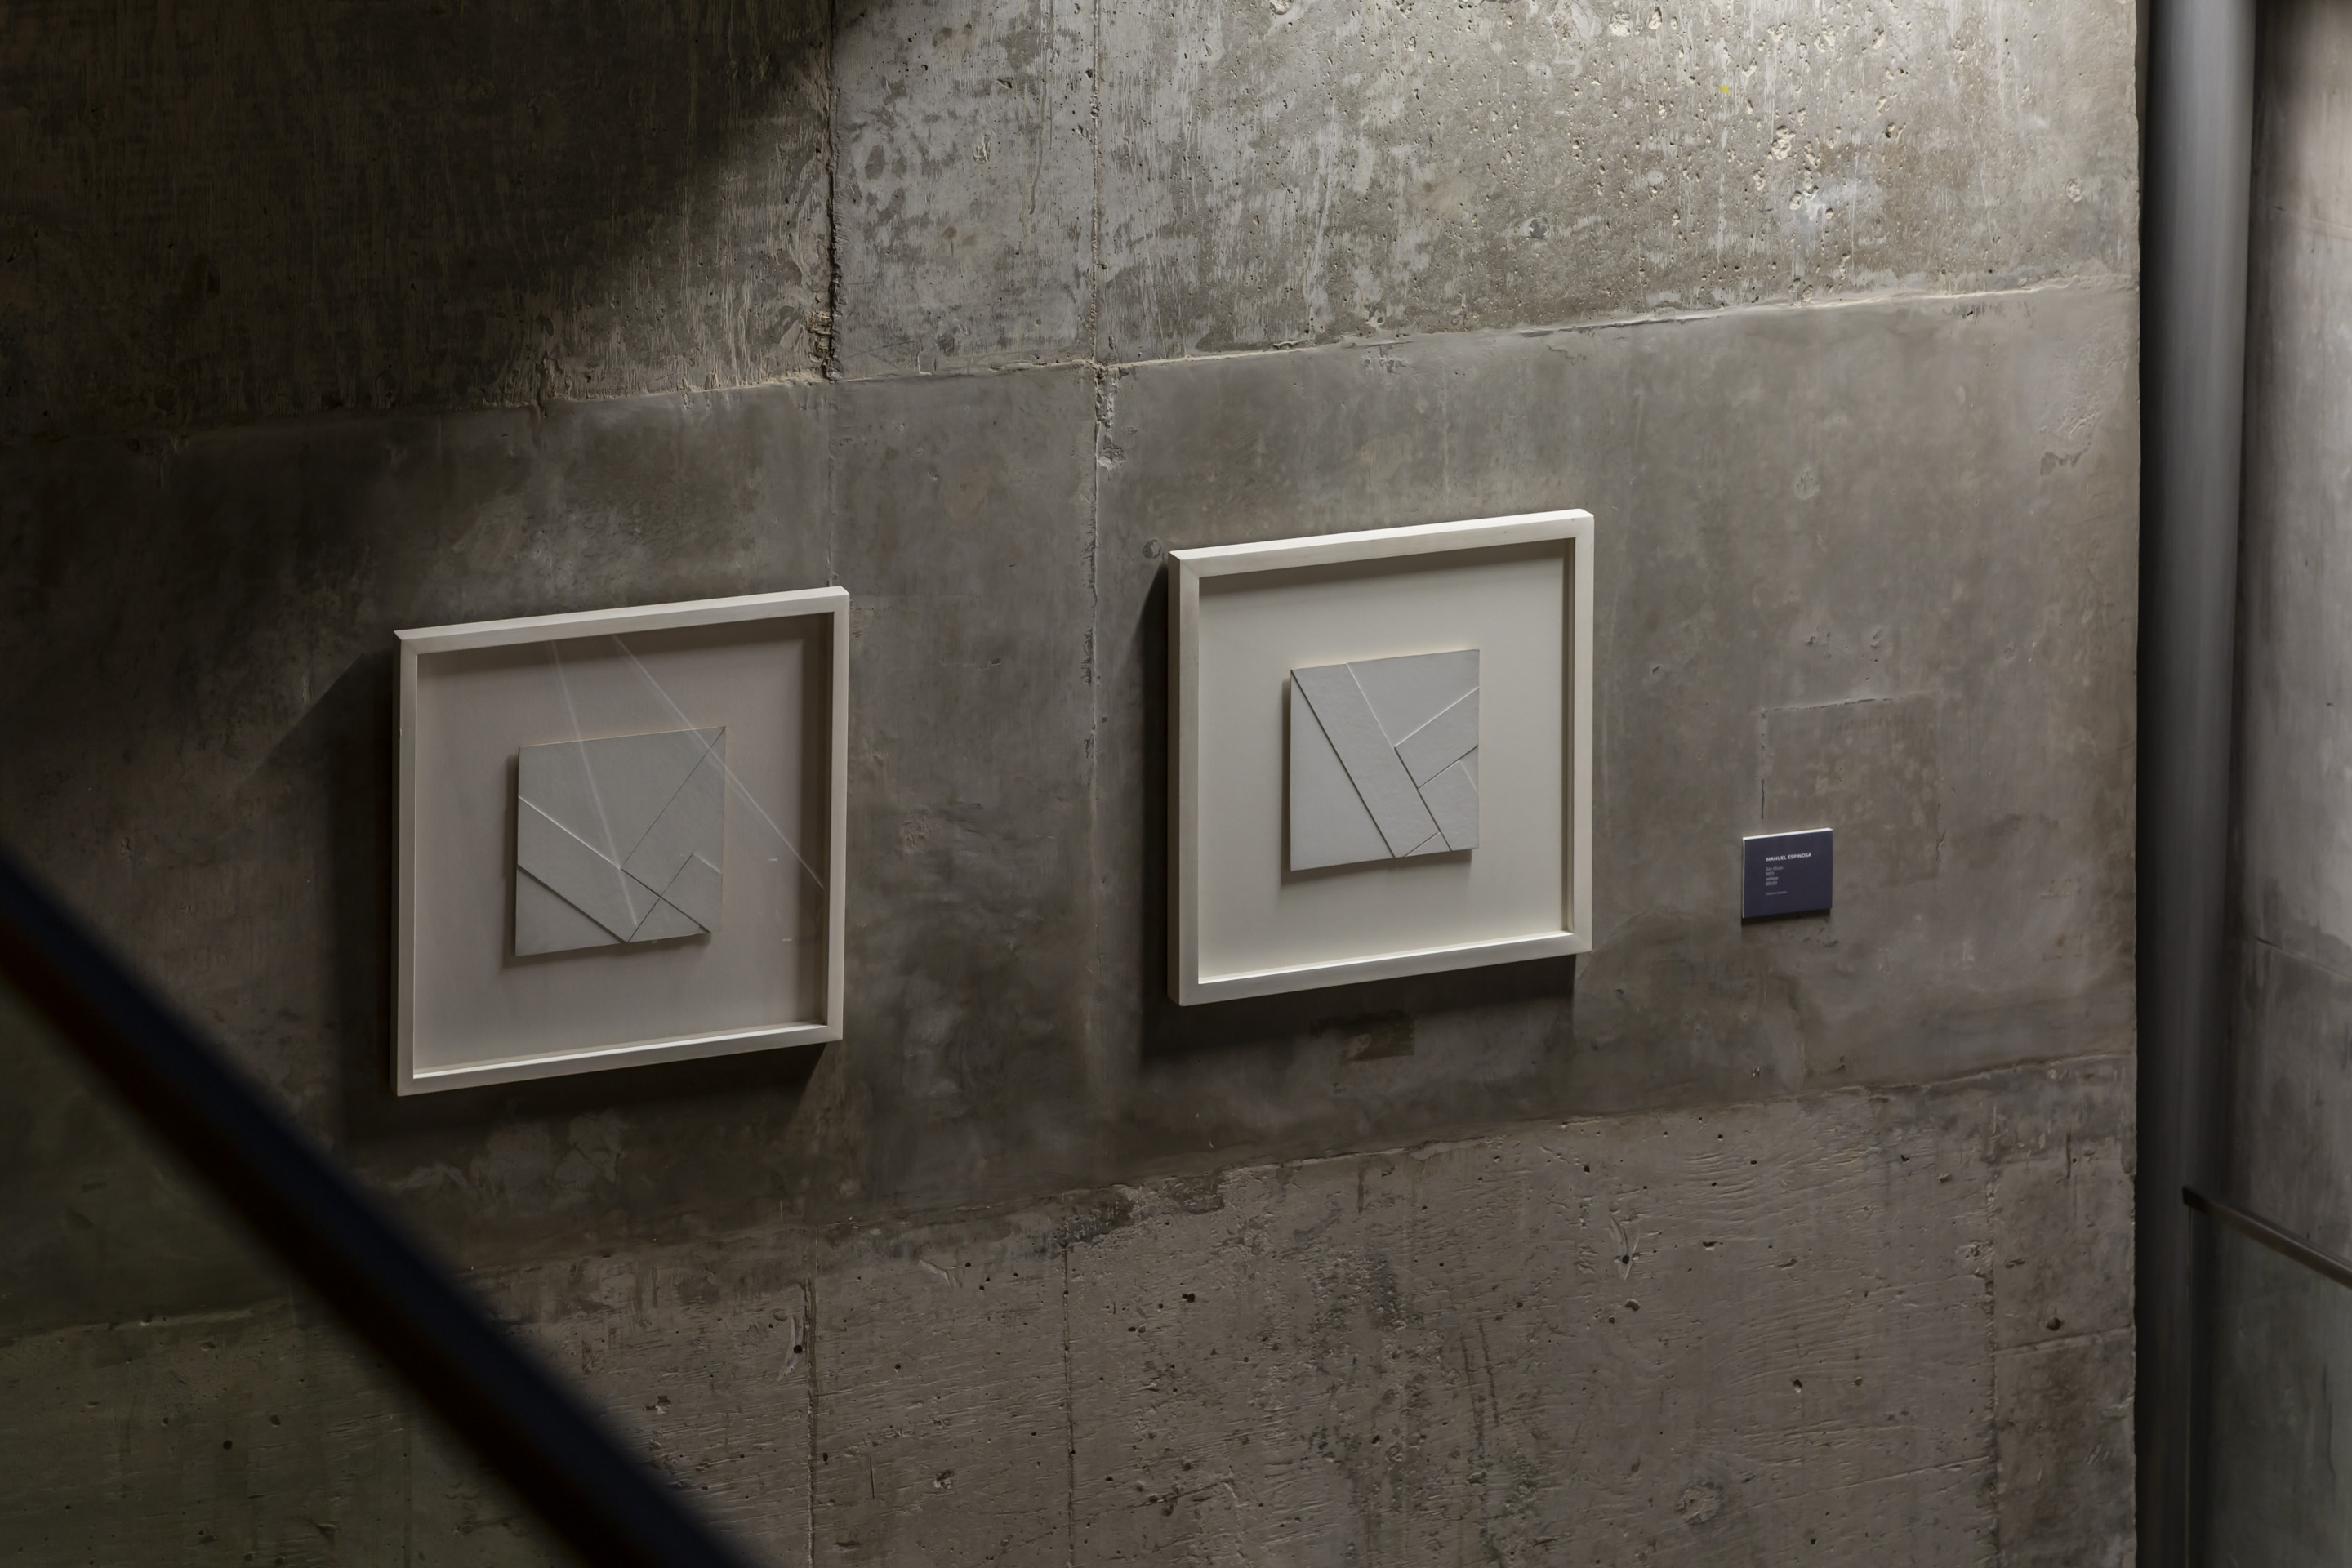 Works by Manuel Espinosa. Photo: Bruto Studio. Courtesy of MACBA